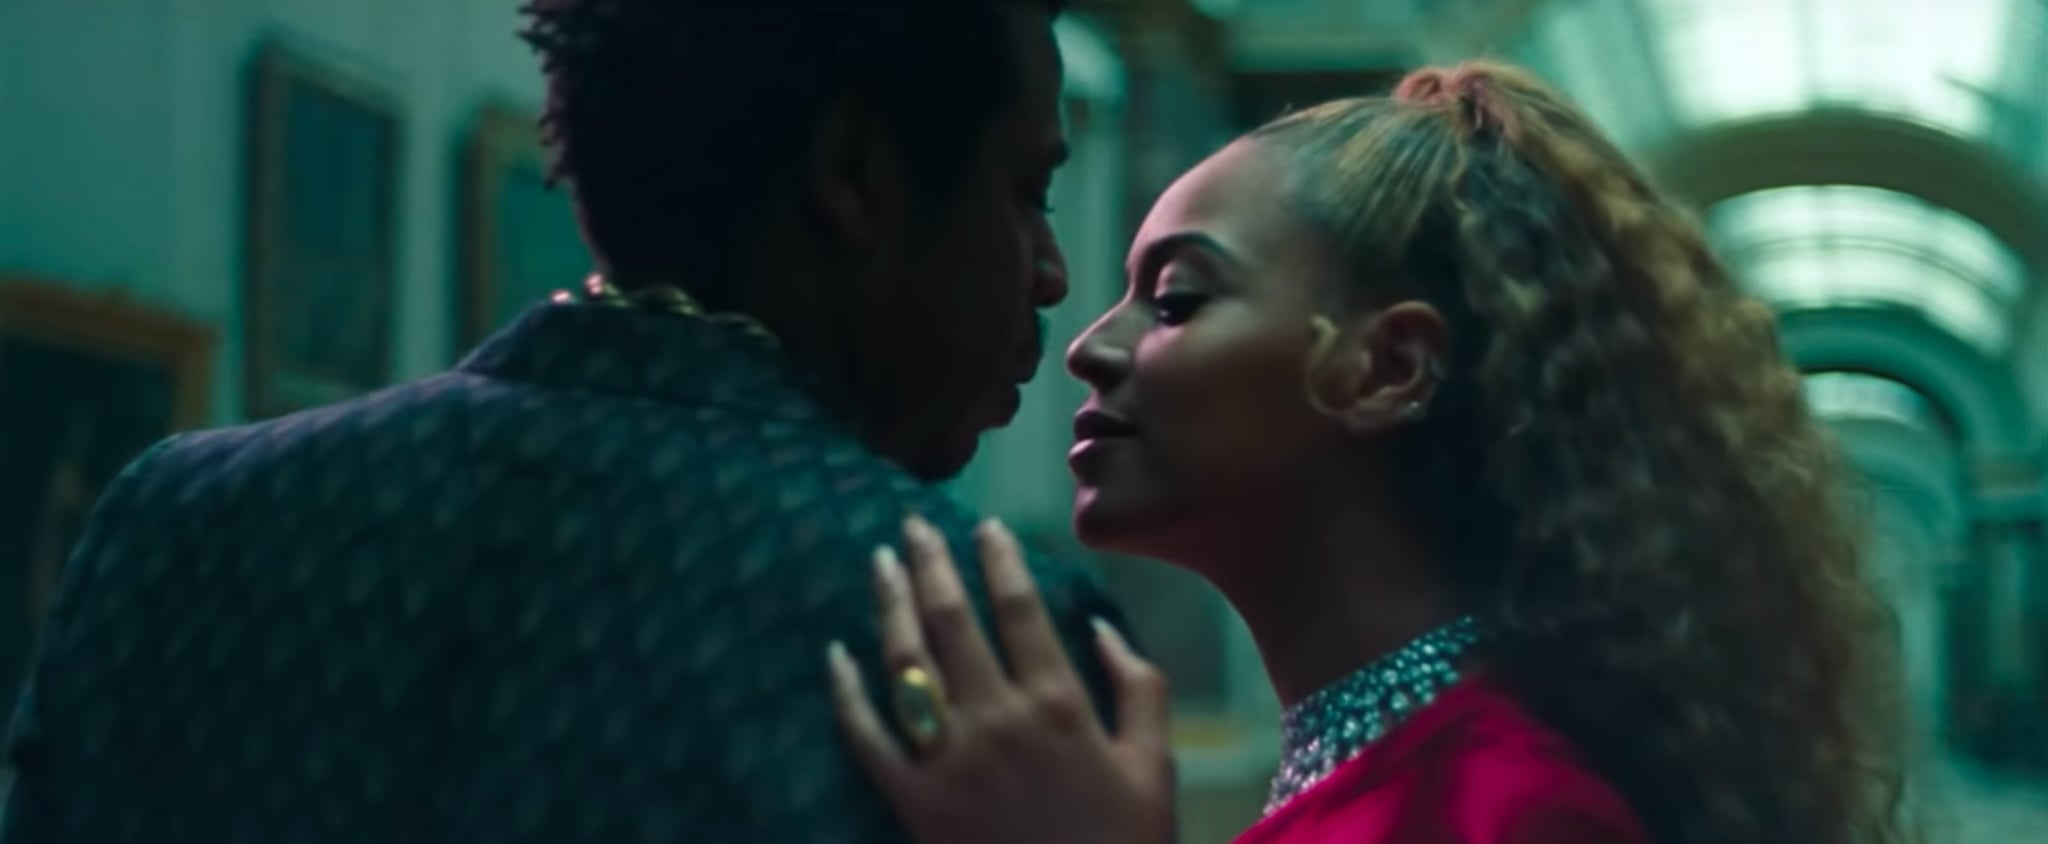 Beyoncé and Jay-Z APESHIT Music Video GIFS